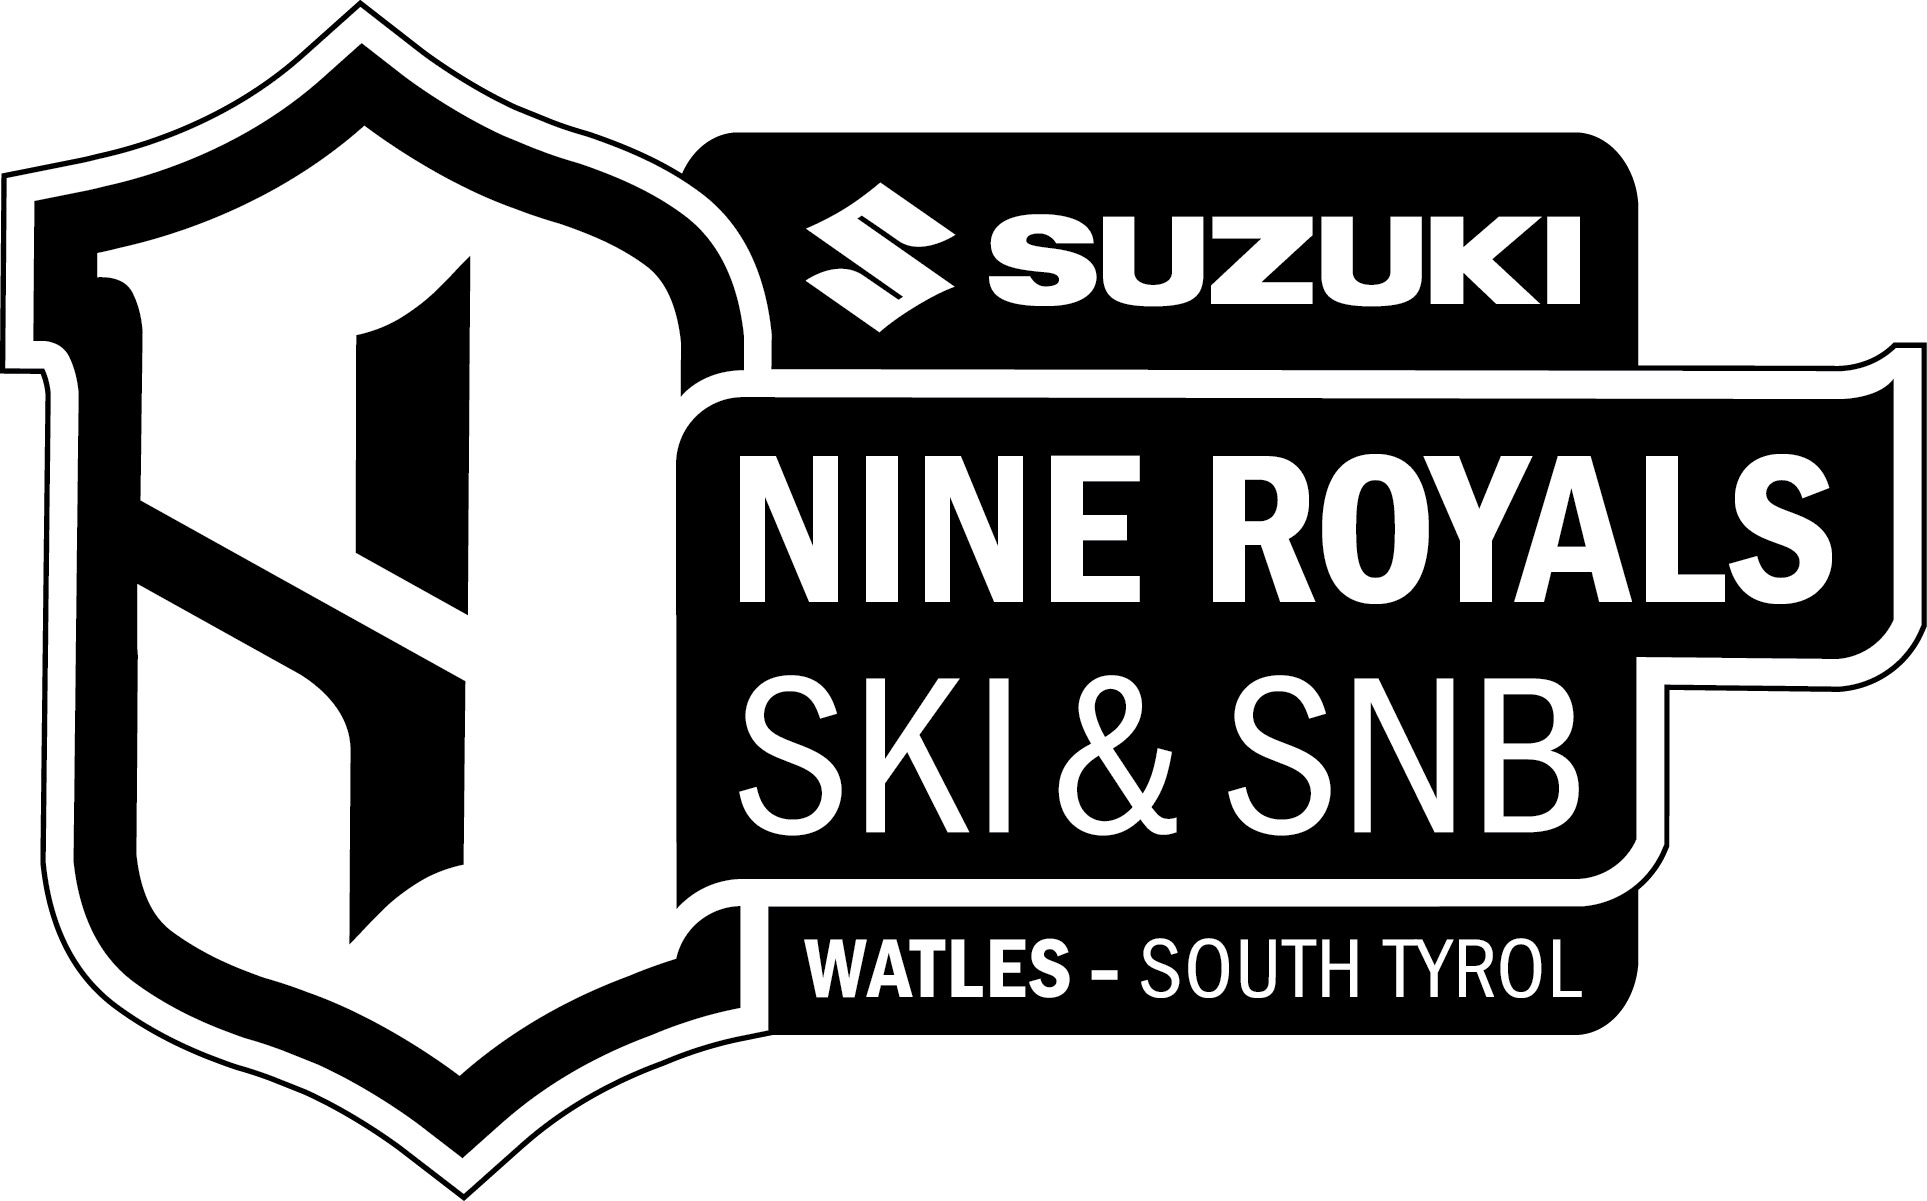 Suzuki Nine Royals starts 27th March